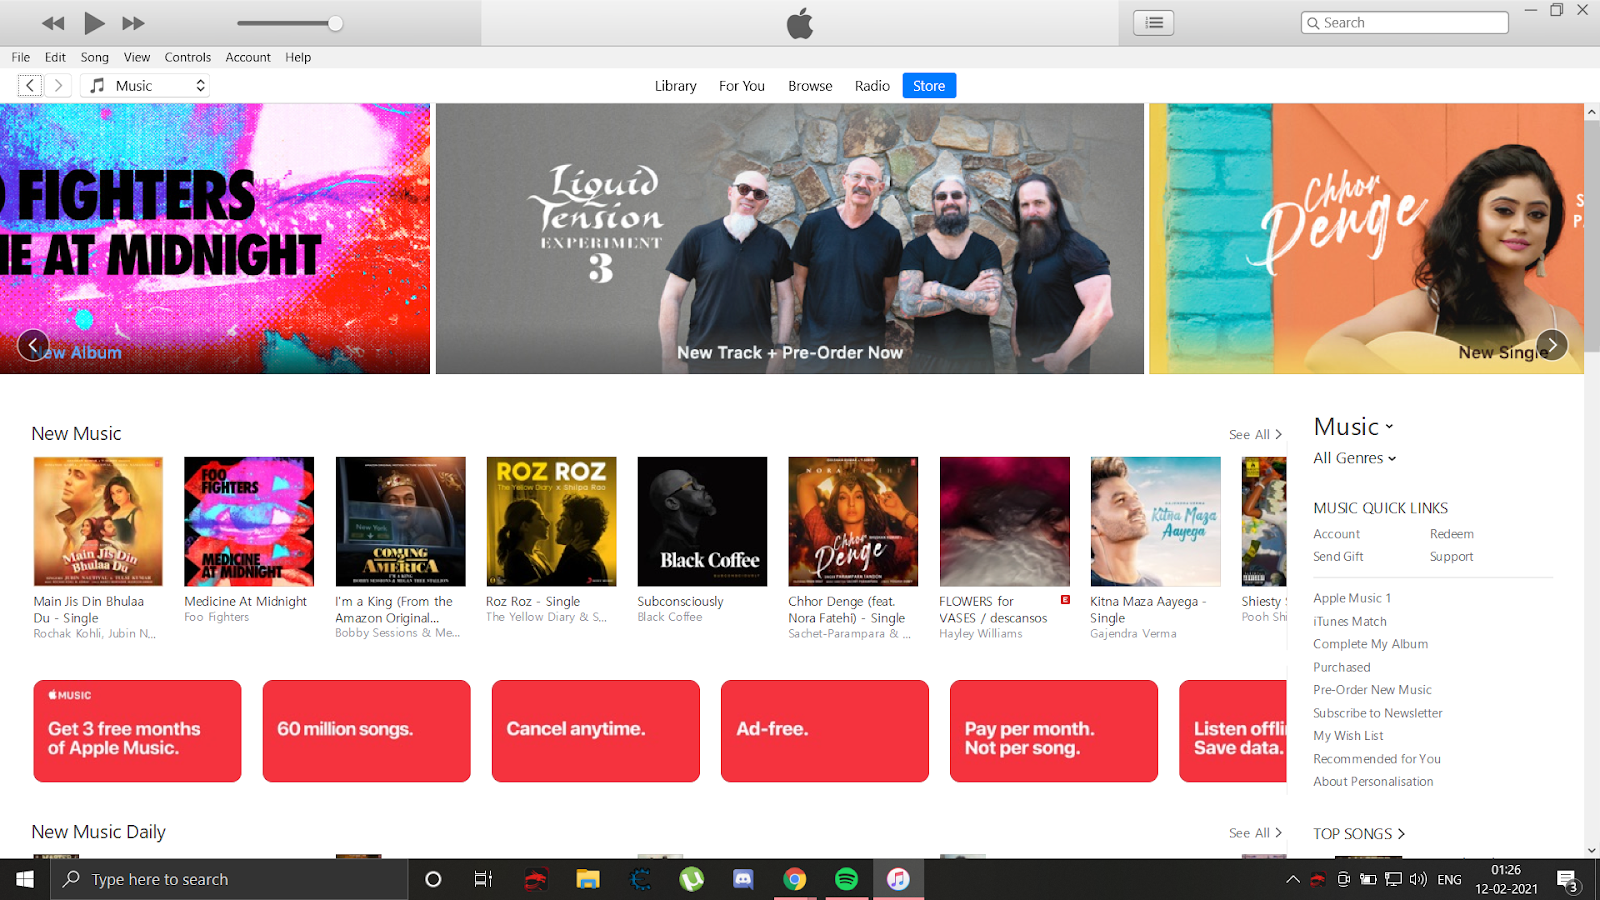 iTunes Homepage - change your apple id email address